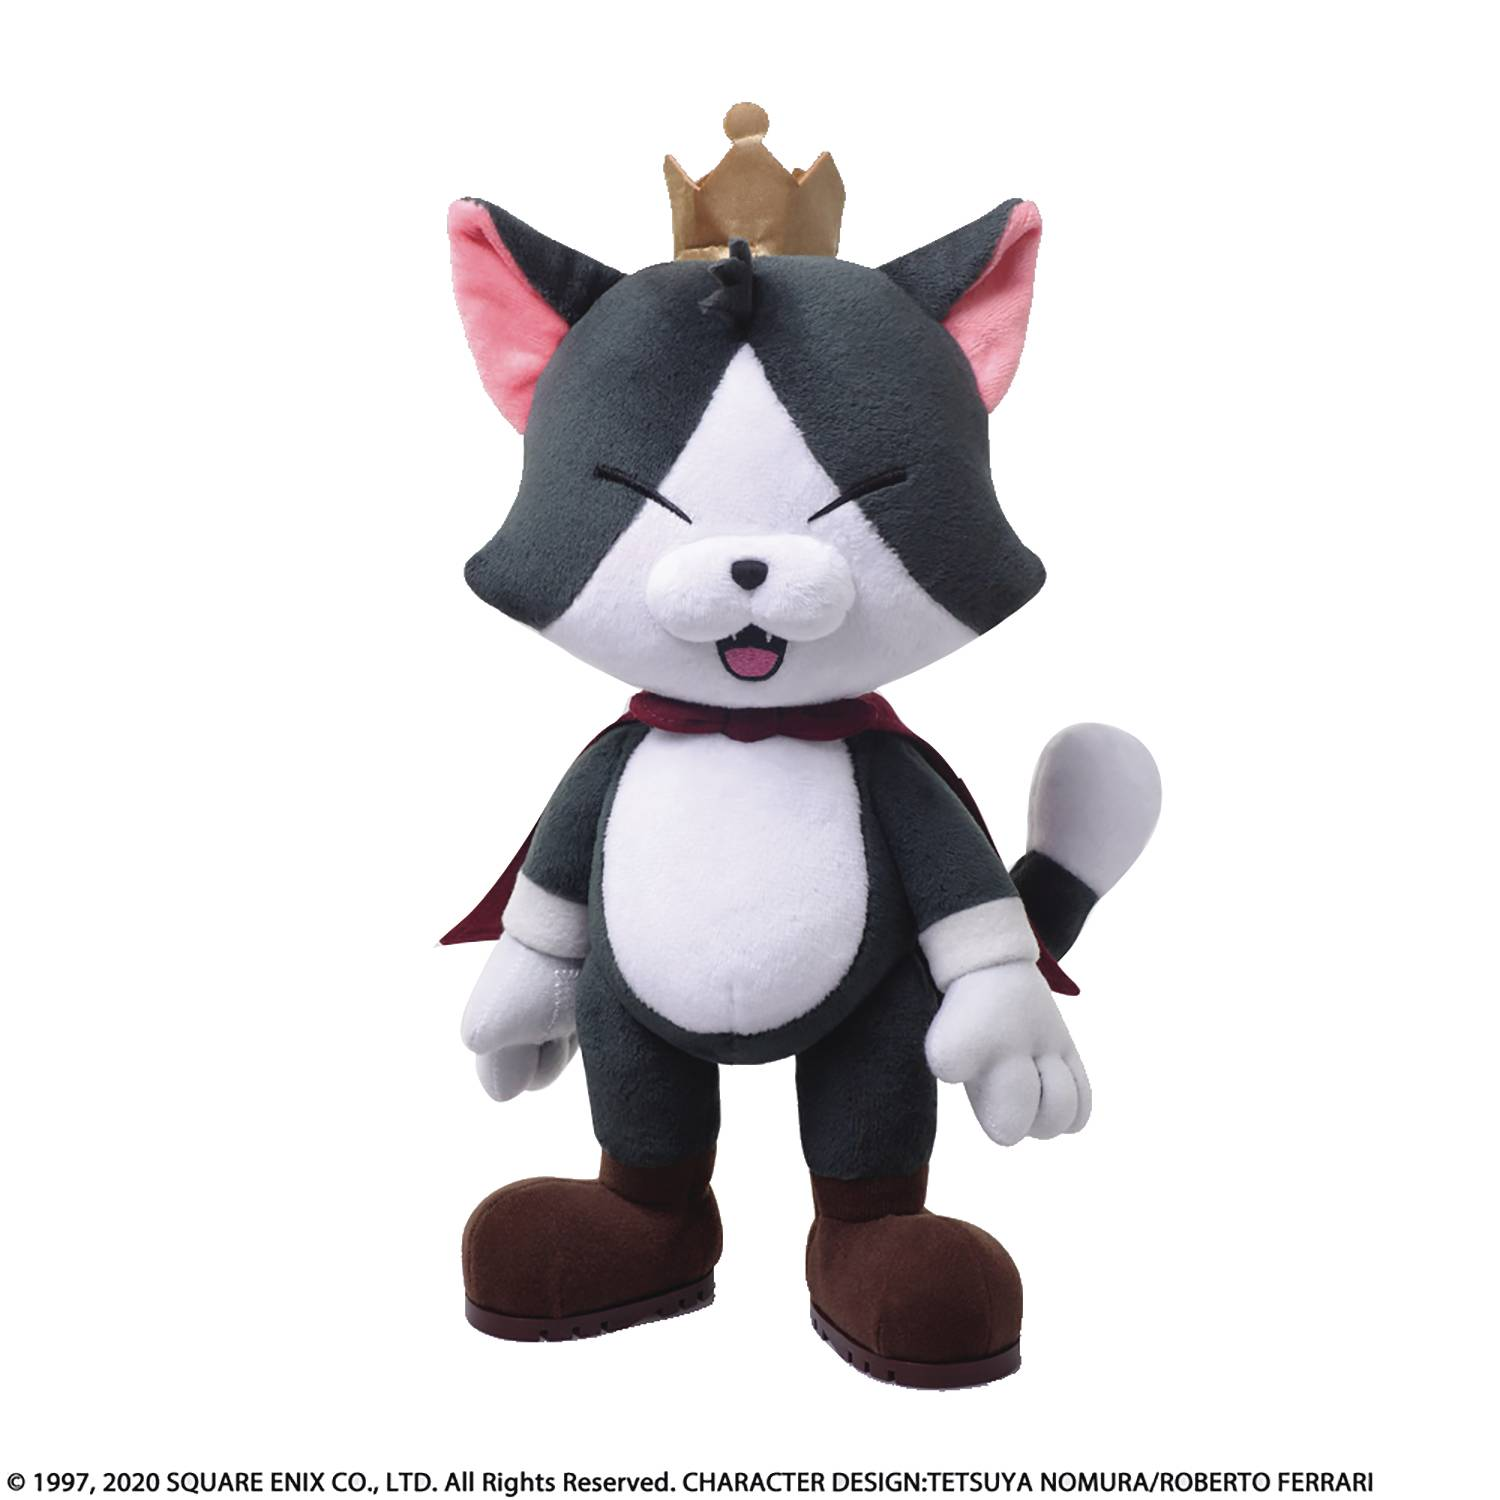 FINAL FANTASY VII CAIT SITH PLUSH ACTION DOLL